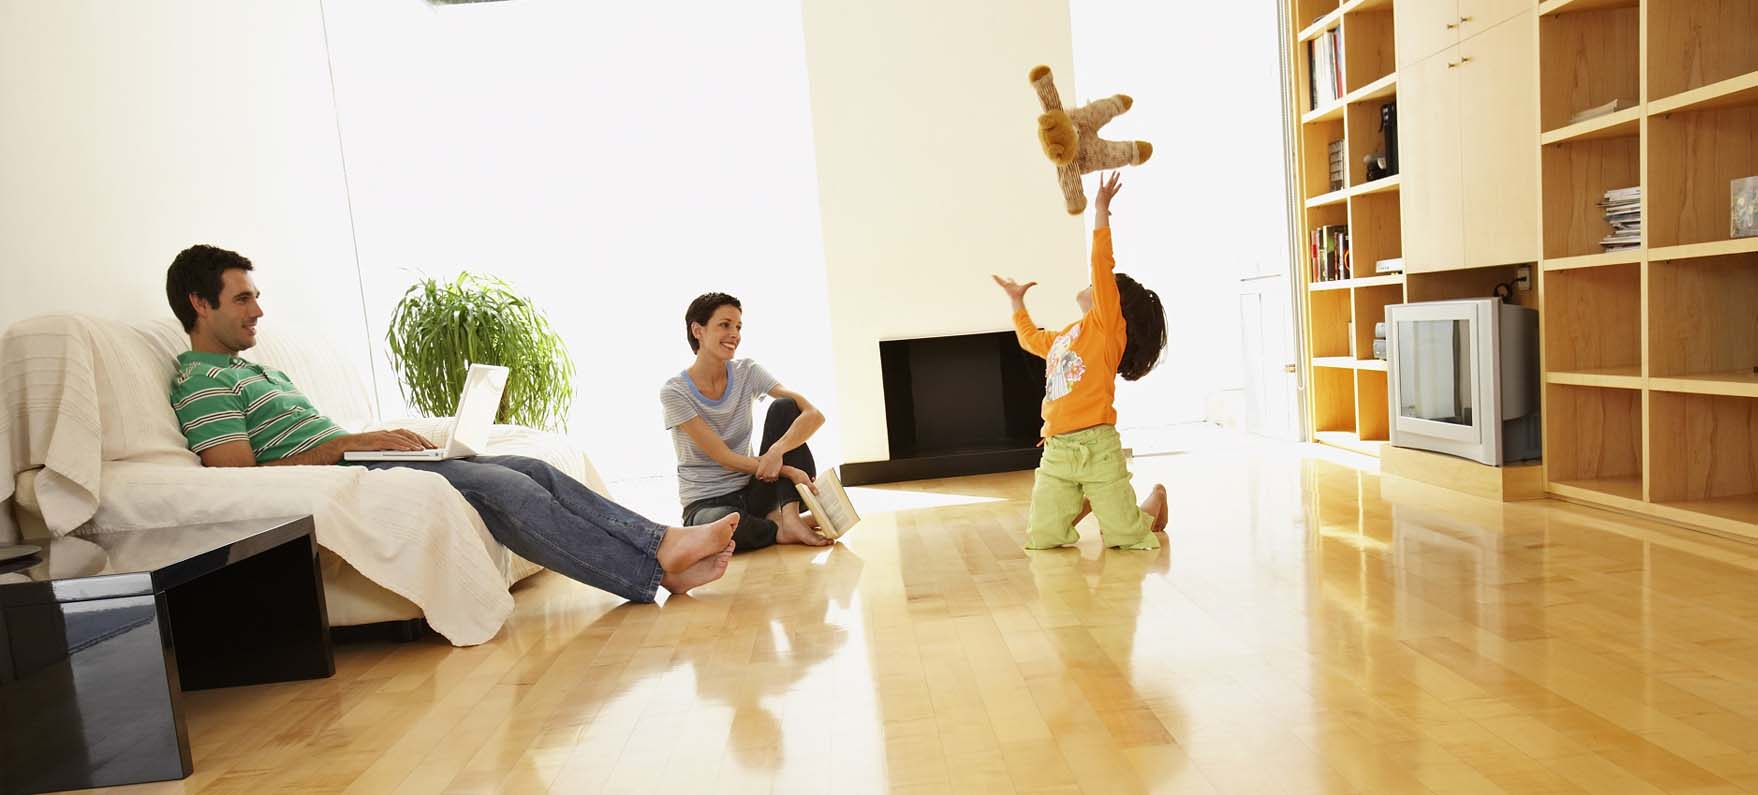 Hardwood Floor Installer Orange Countyo CA